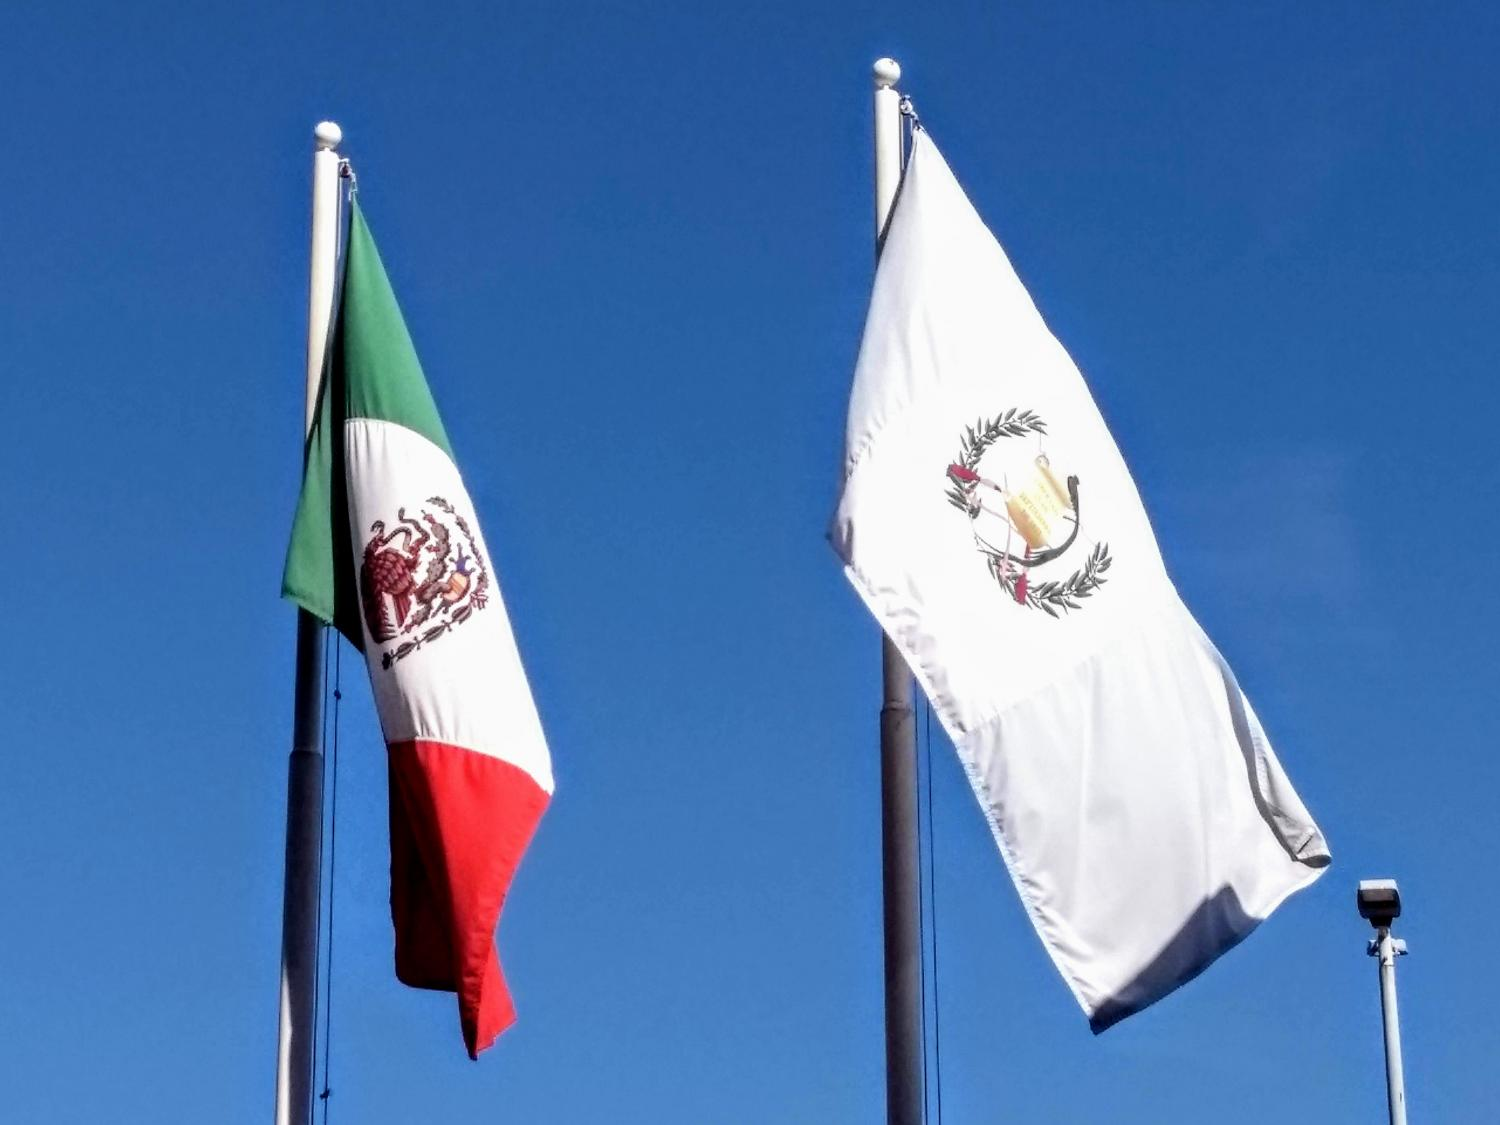 Flags at the border